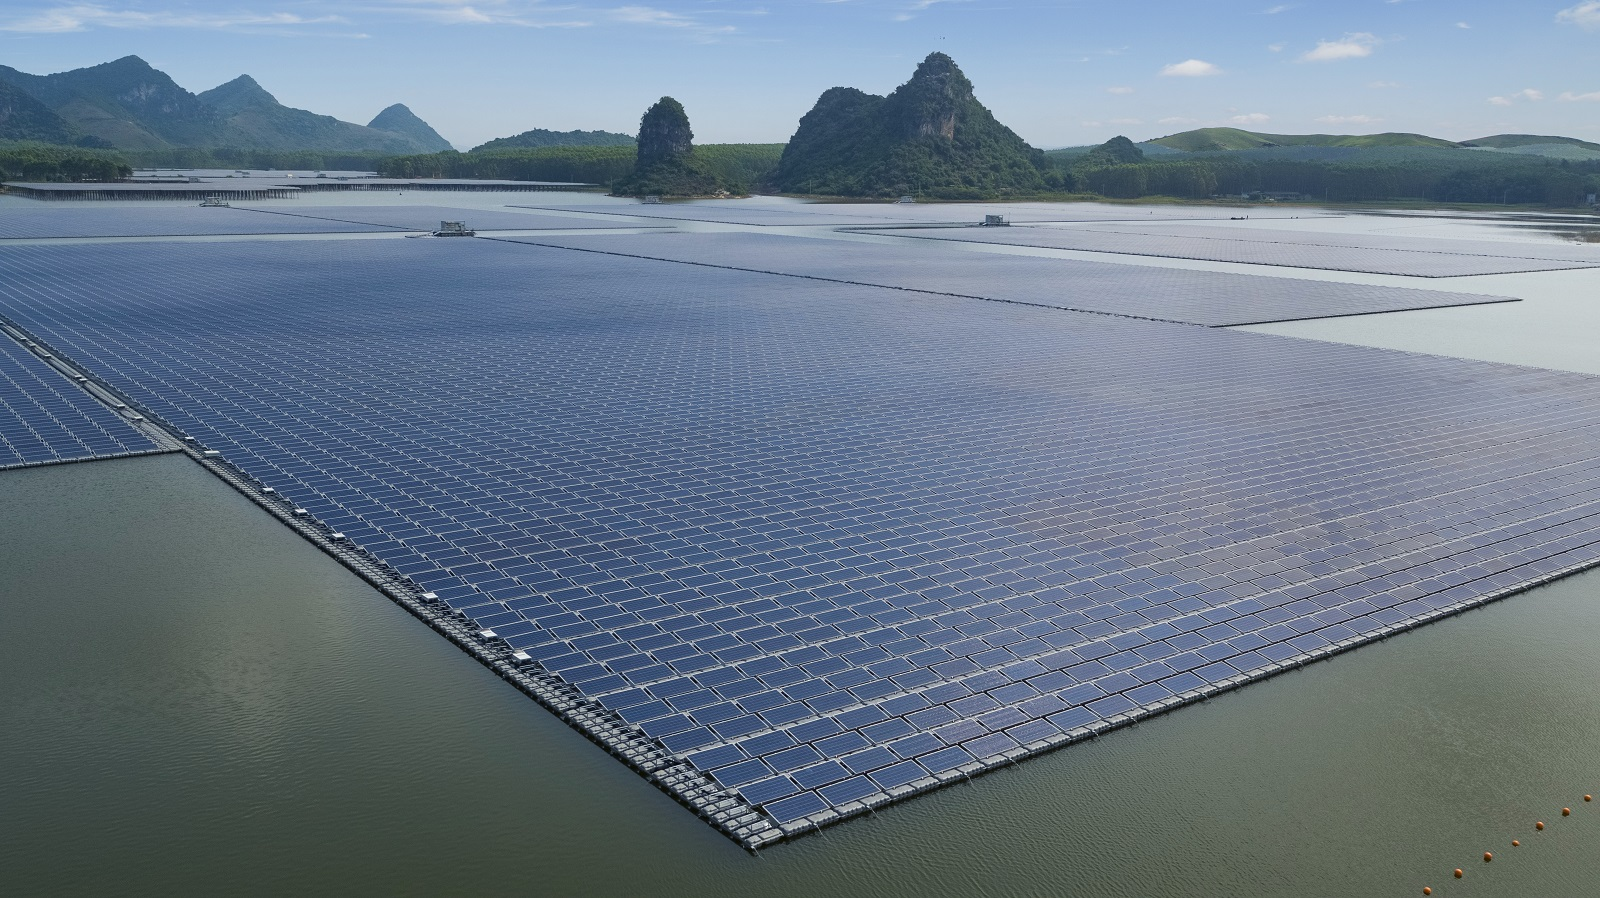 A floating solar install in China's Guangxi Province. Image: Sungrow.